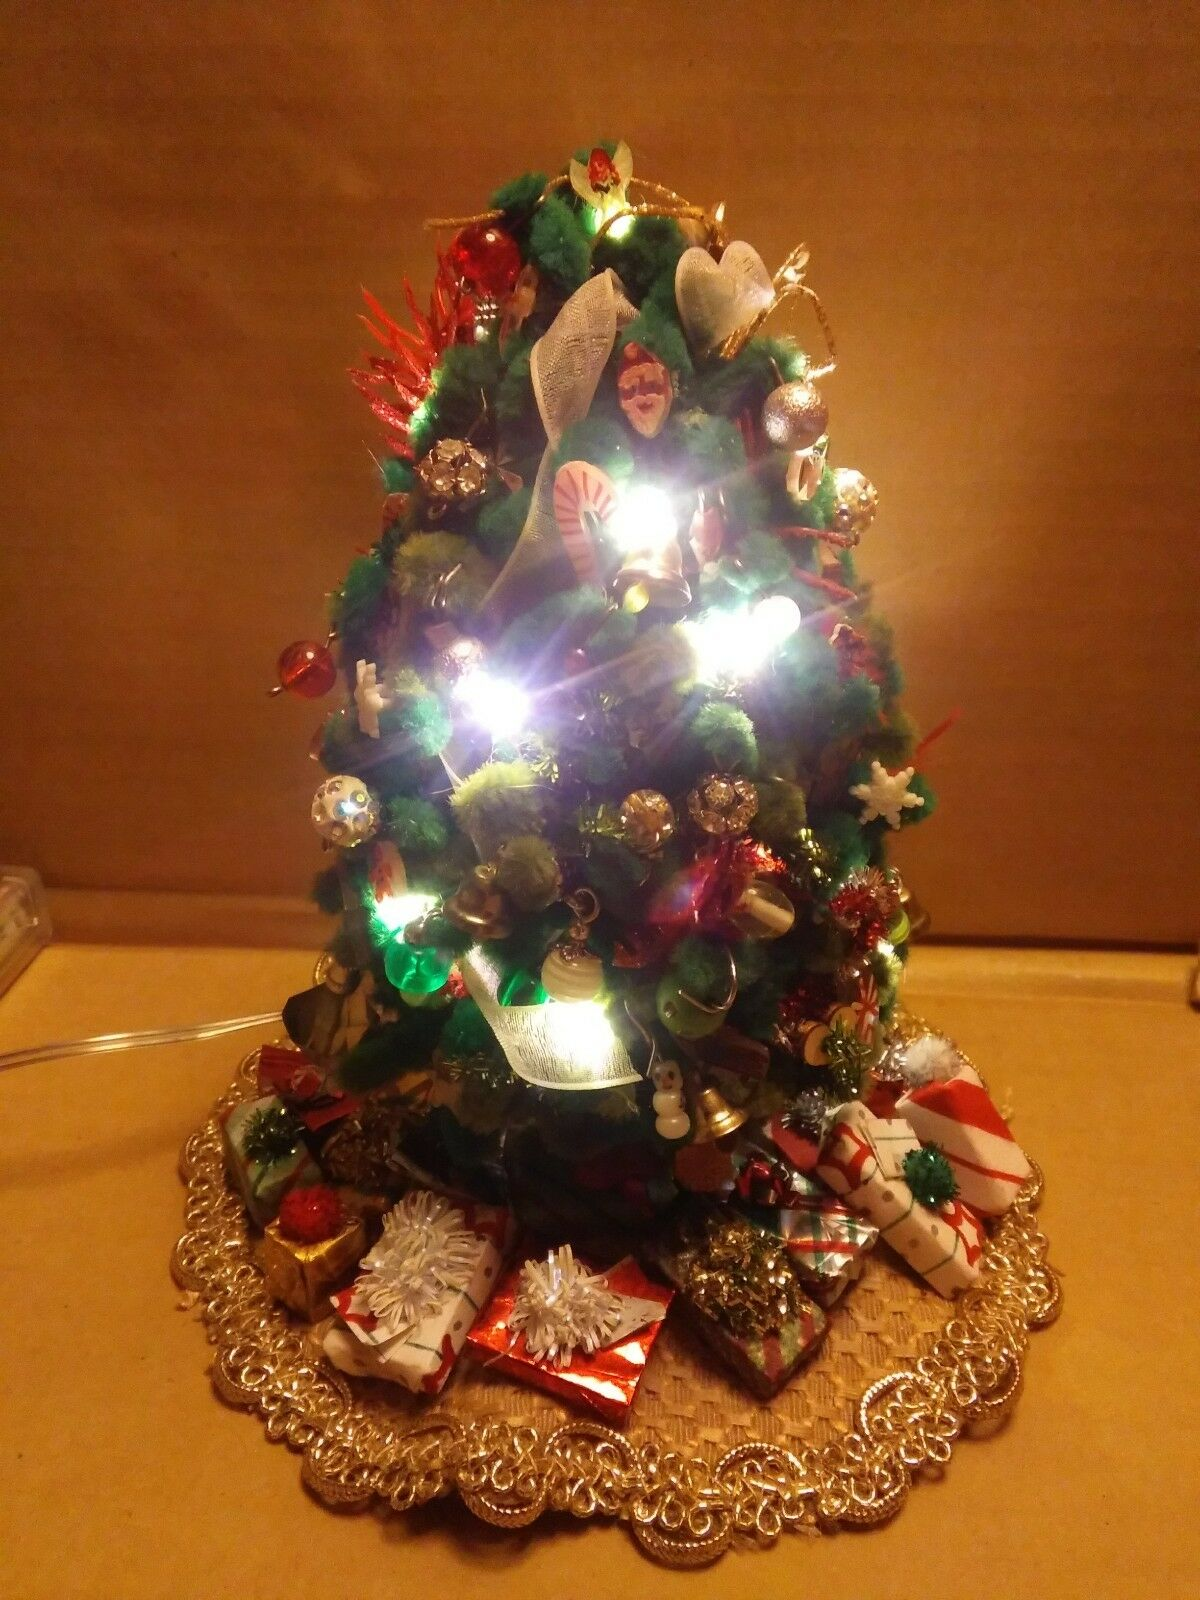 Dollhaus miniature lighted decorated christmas tree, skirt & Geschenks scale 1 12